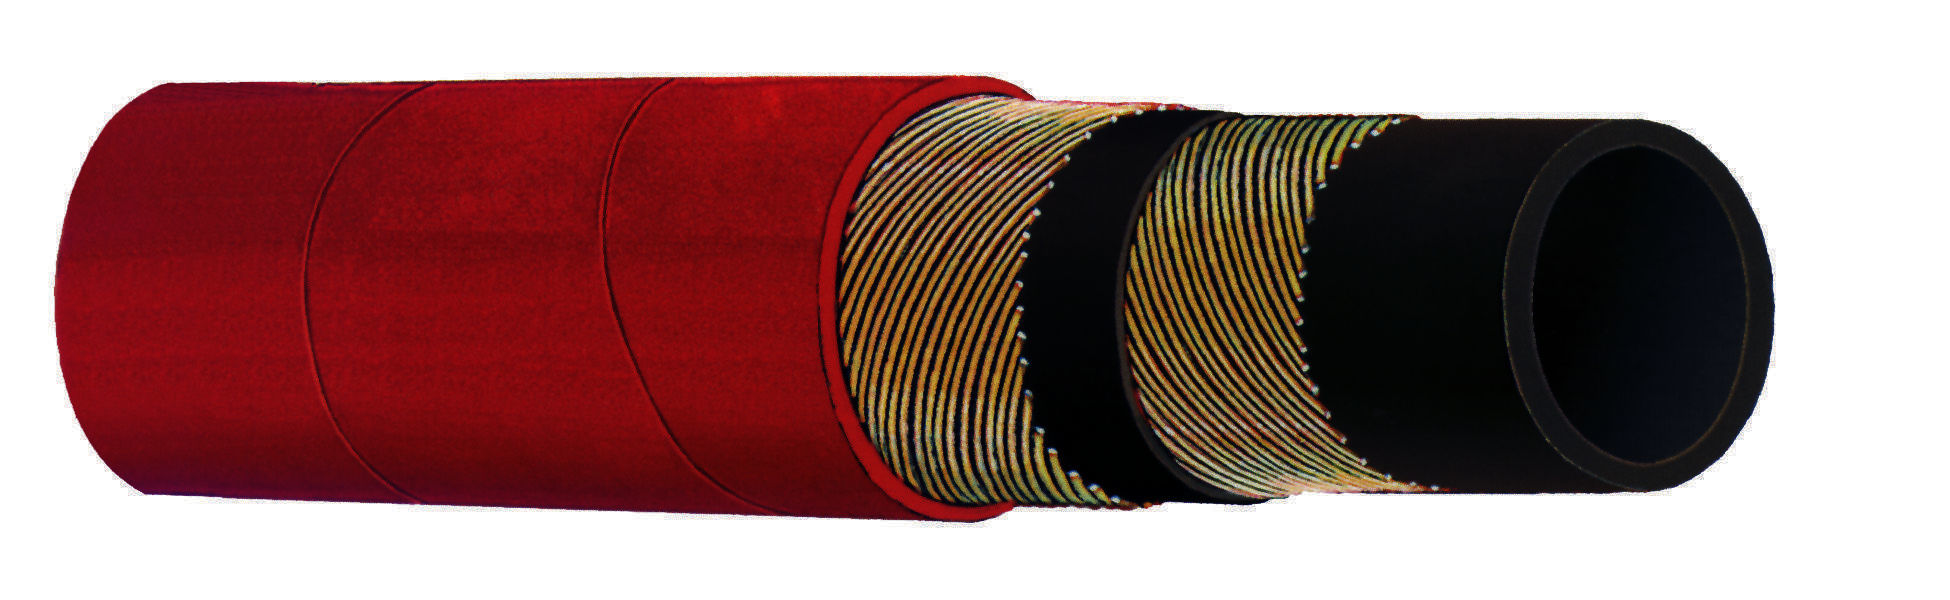 Industrial Rubber & PVC Hose - Kuriyama - 250 PSI Steam Hose